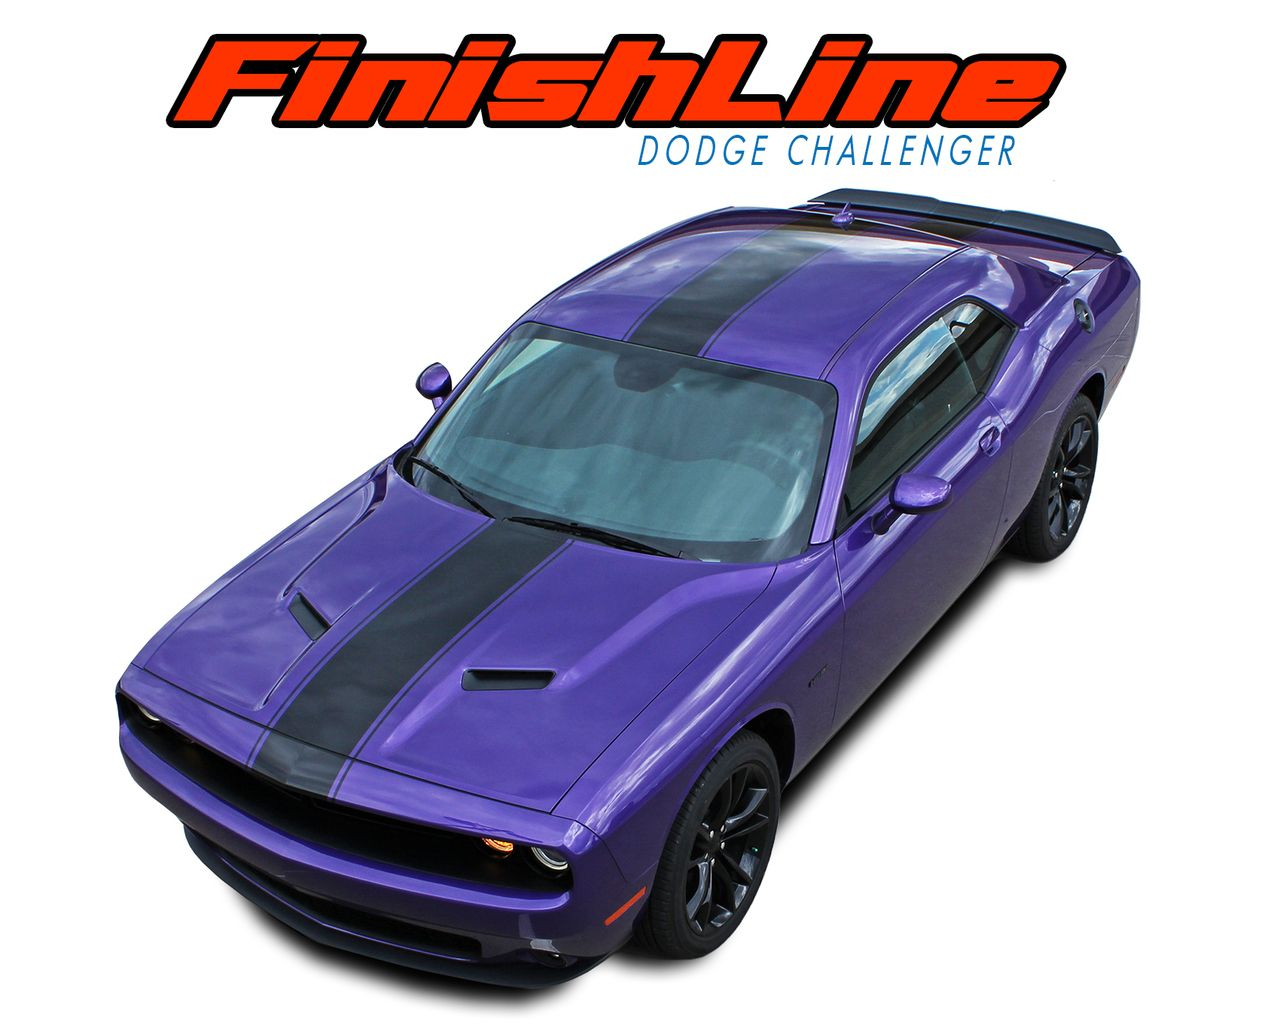 2011 2012 2013 2014 2015 2016 2017 dodge challenger finish line rallye redline style racing stripes vinyl graphics packages and decal kit model specific